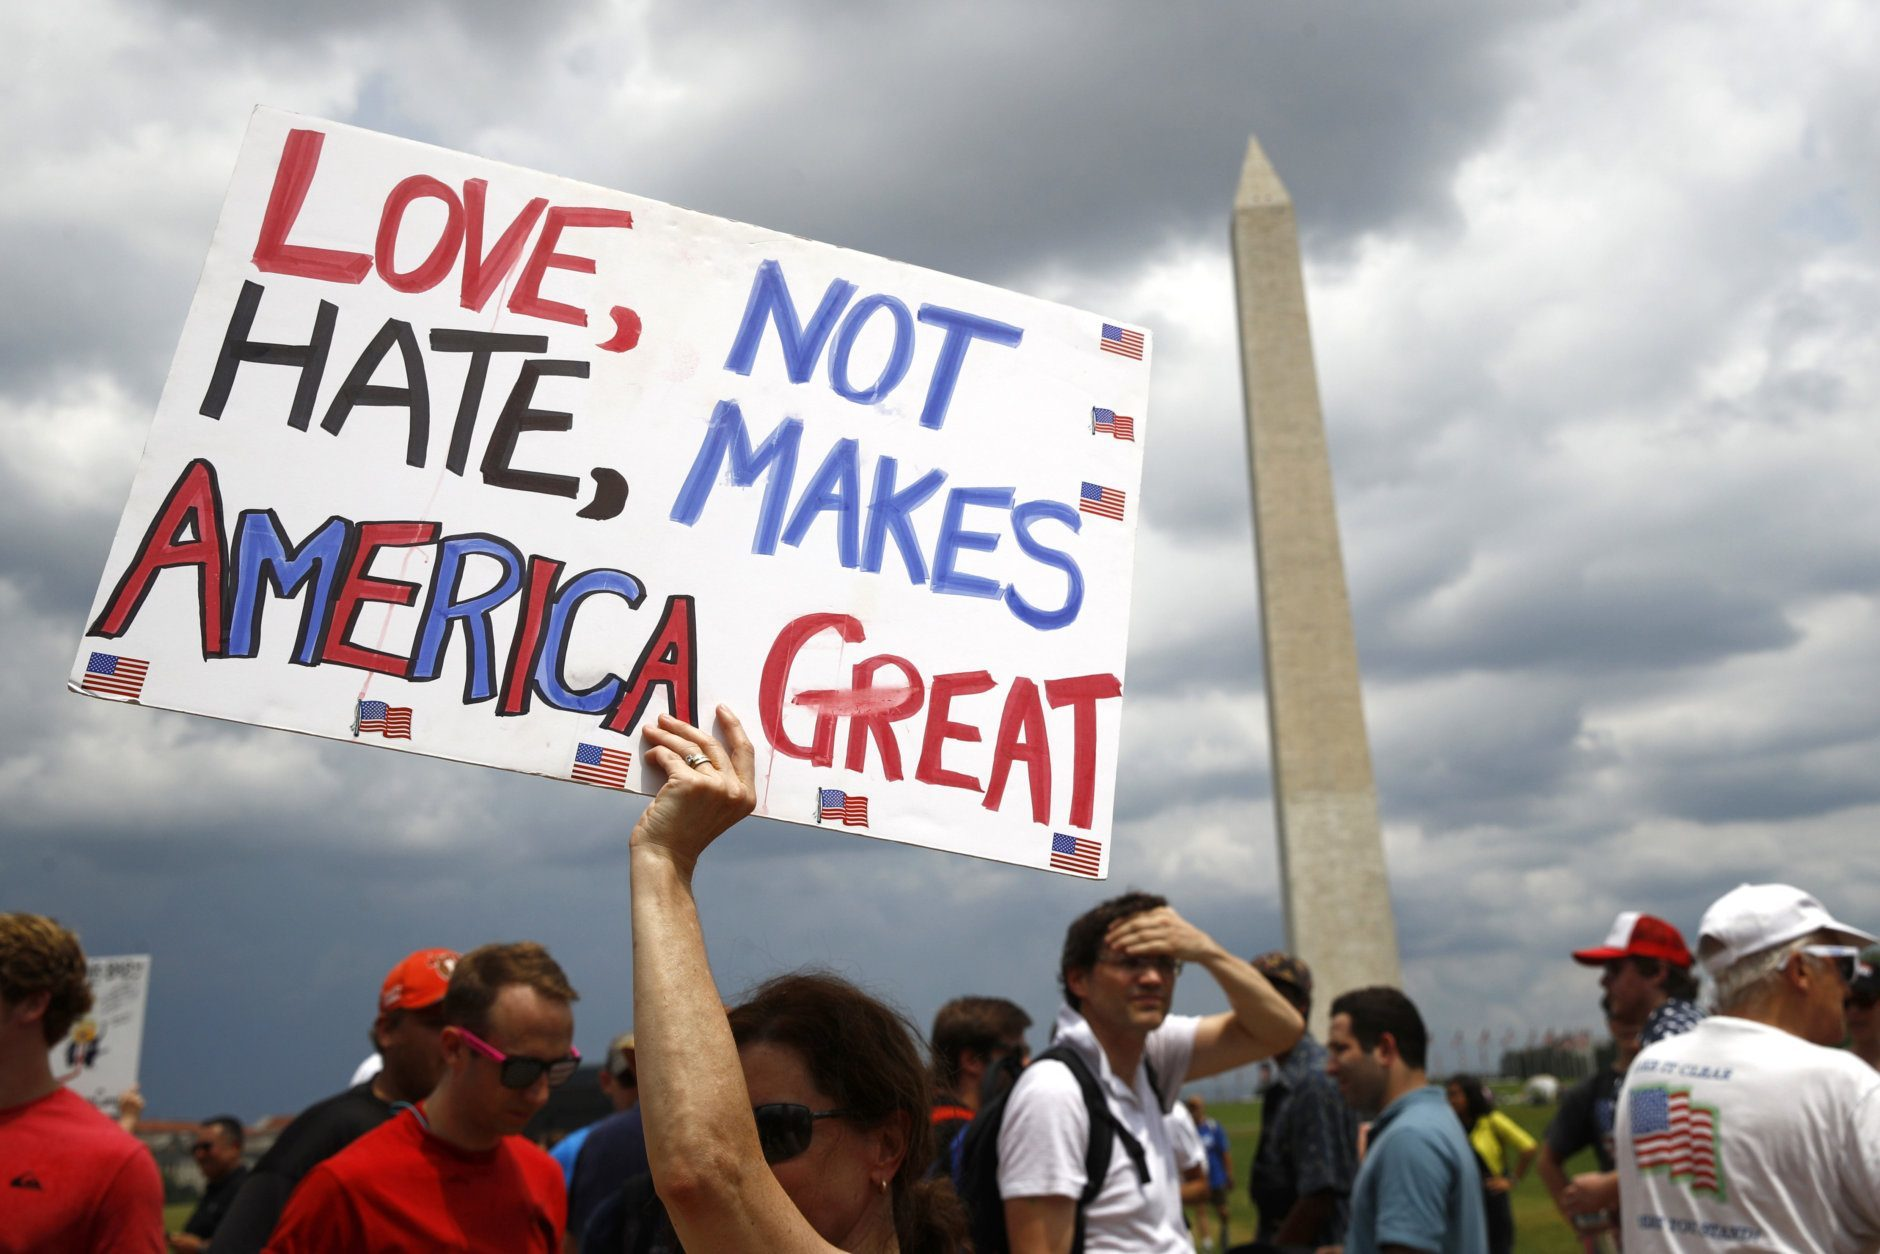 Kathleen Otal, of Arlington, Va., holds up a sign before Independence Day celebrations, Thursday, July 4, 2019, on the National Mall in Washington. (AP Photo/Patrick Semansky)